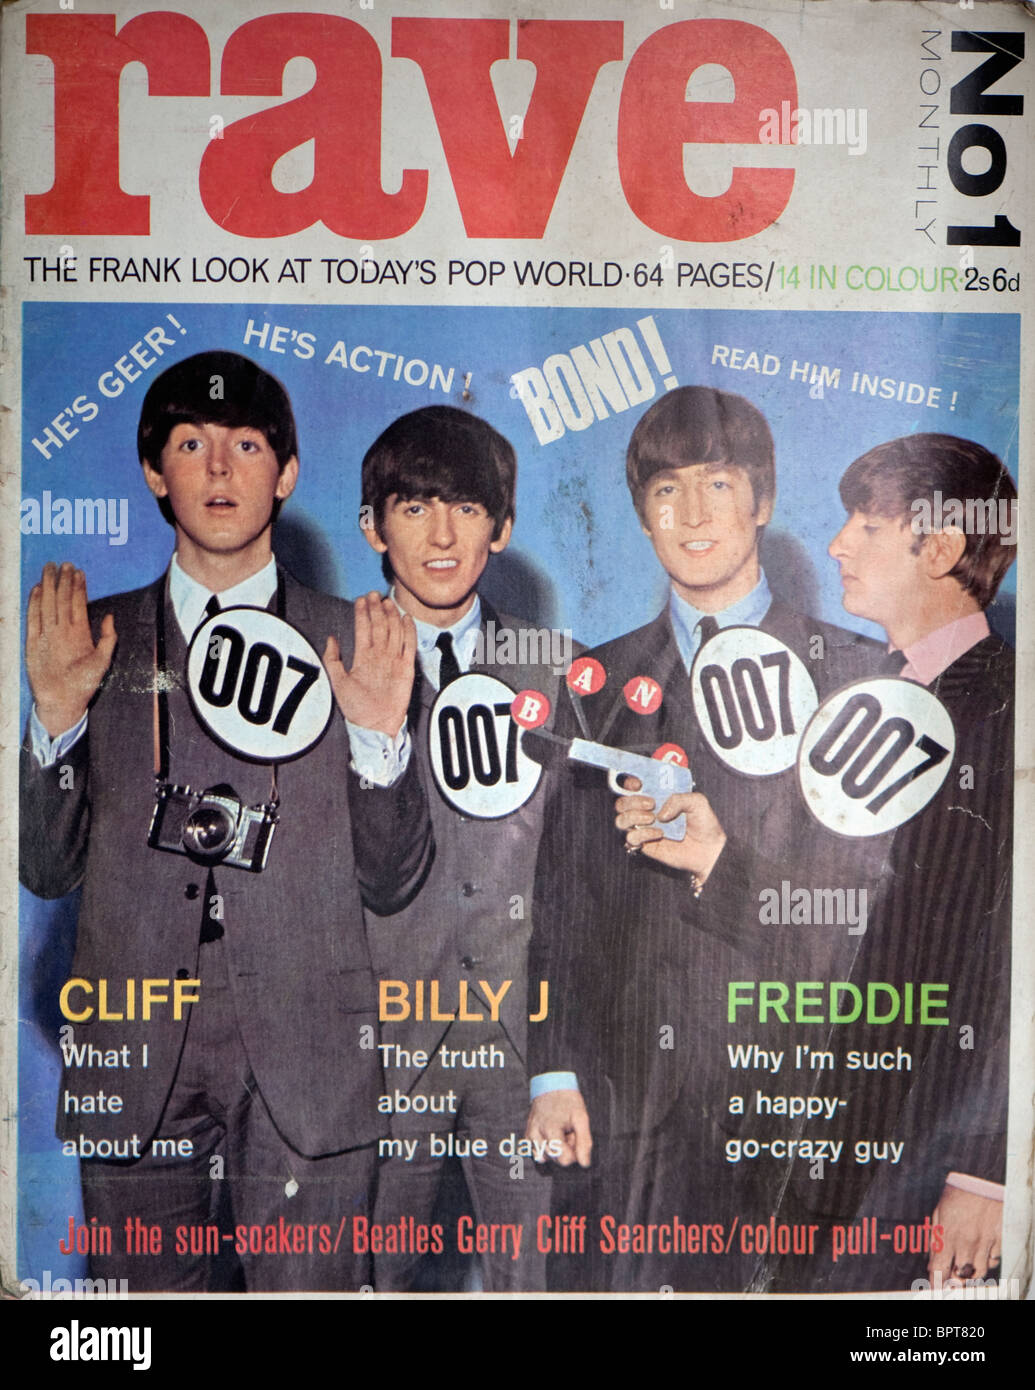 Cover of the Sixties magazine Rave showing The Beatles. - Stock Image